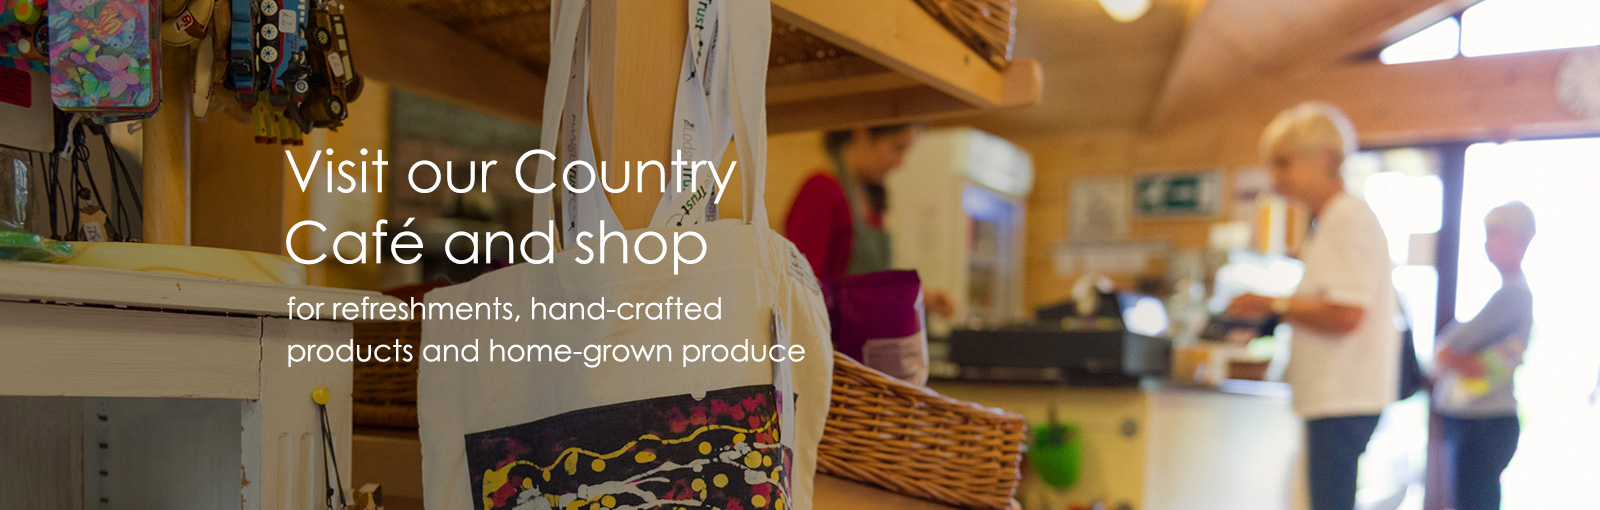 Visit our Country Café and Shop for refreshments, hand-crafted products and home-grown produce